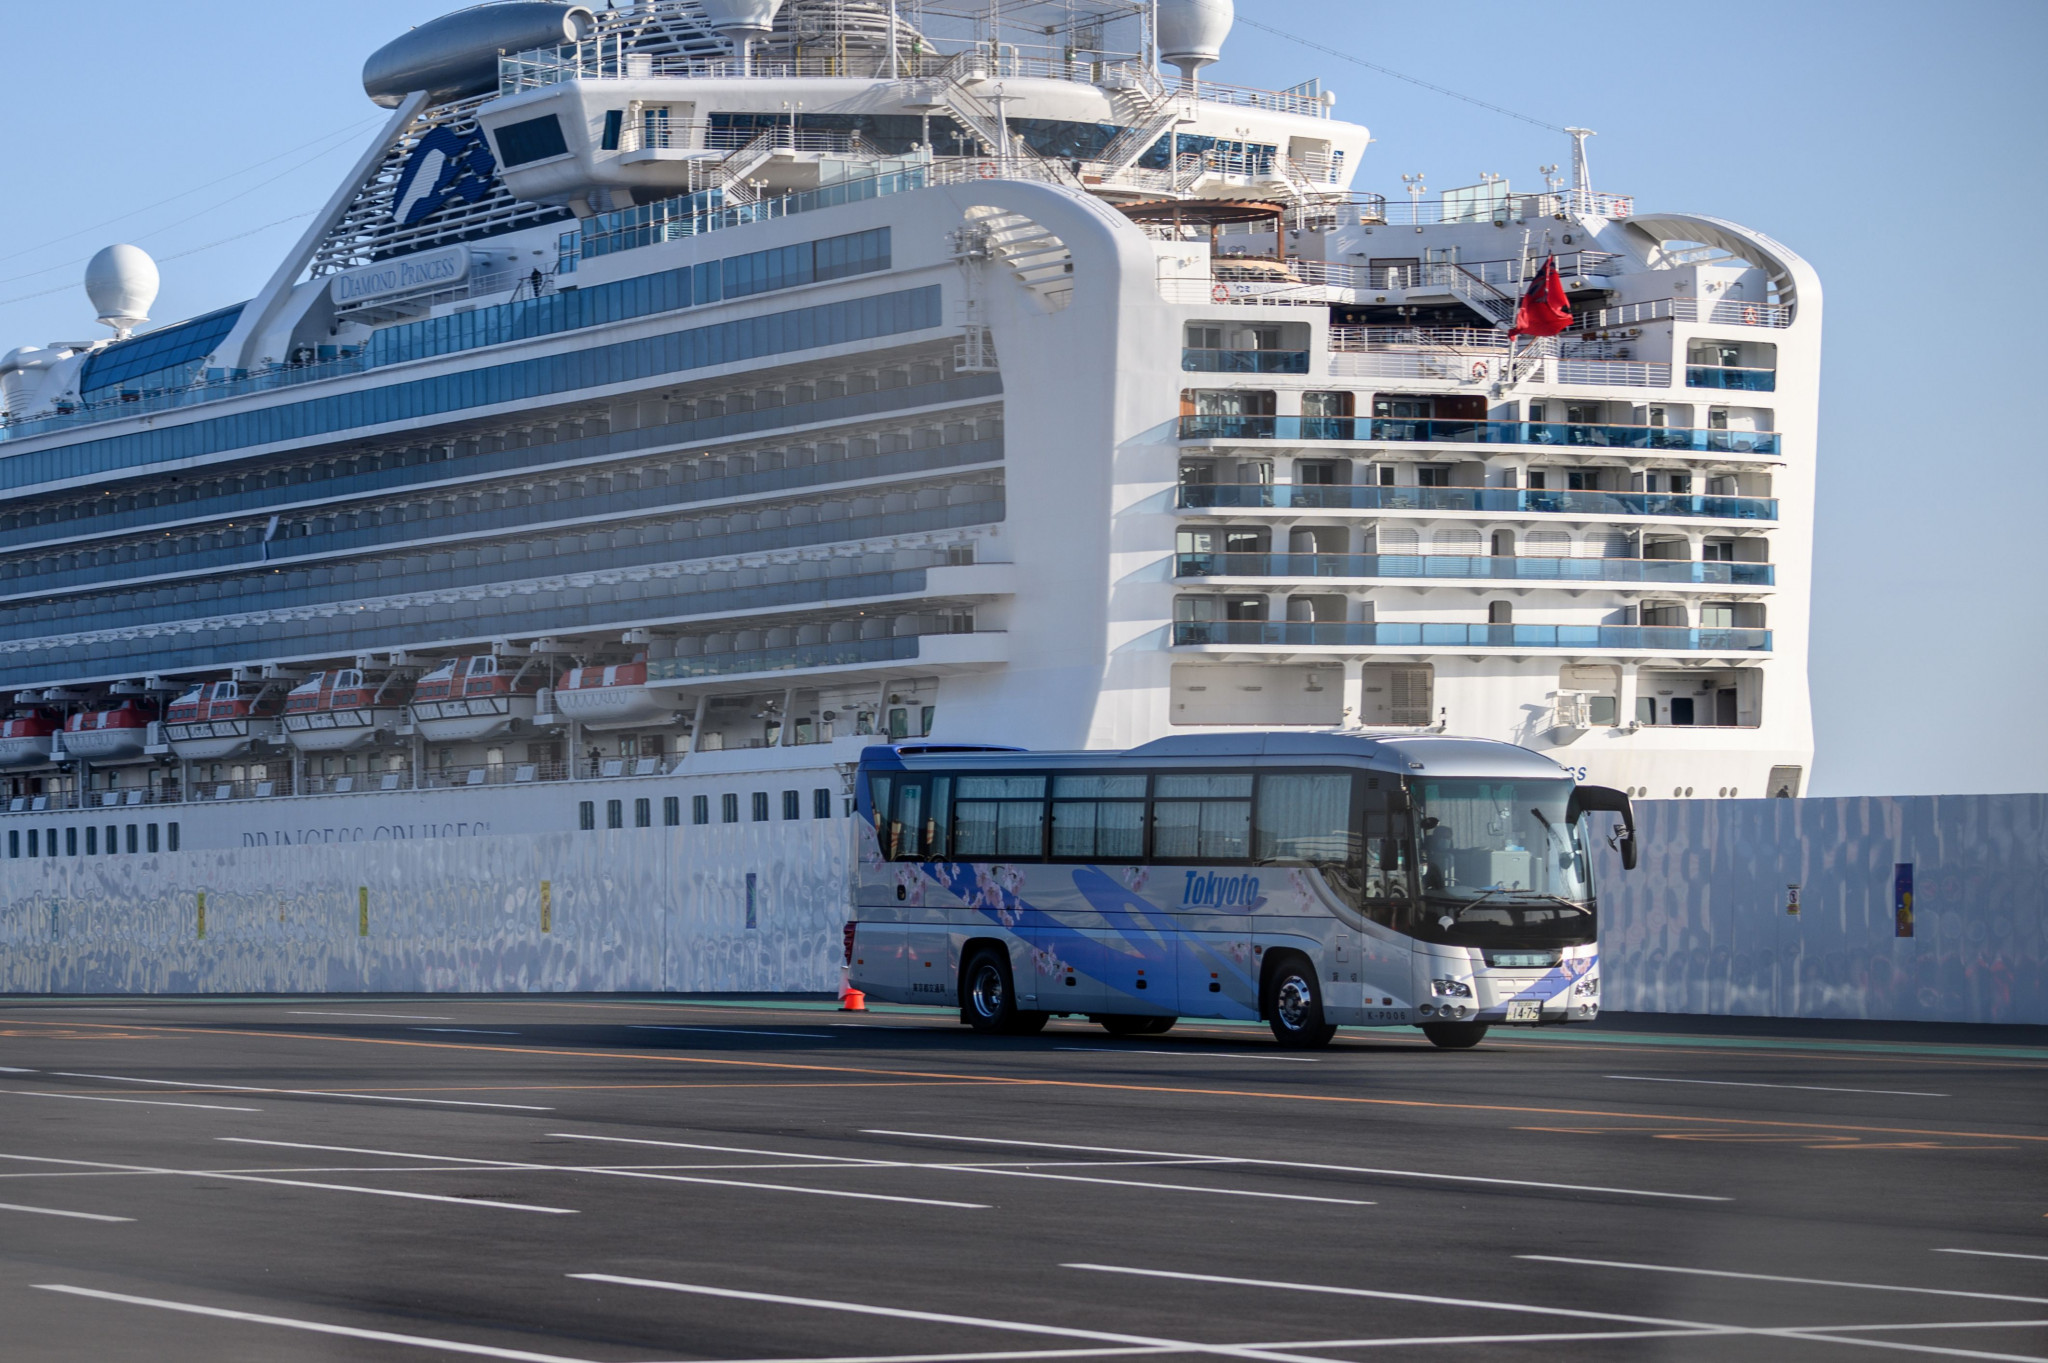 More than 600 cases of the virus have been reported on the quarantined cruise ship ©Getty Images